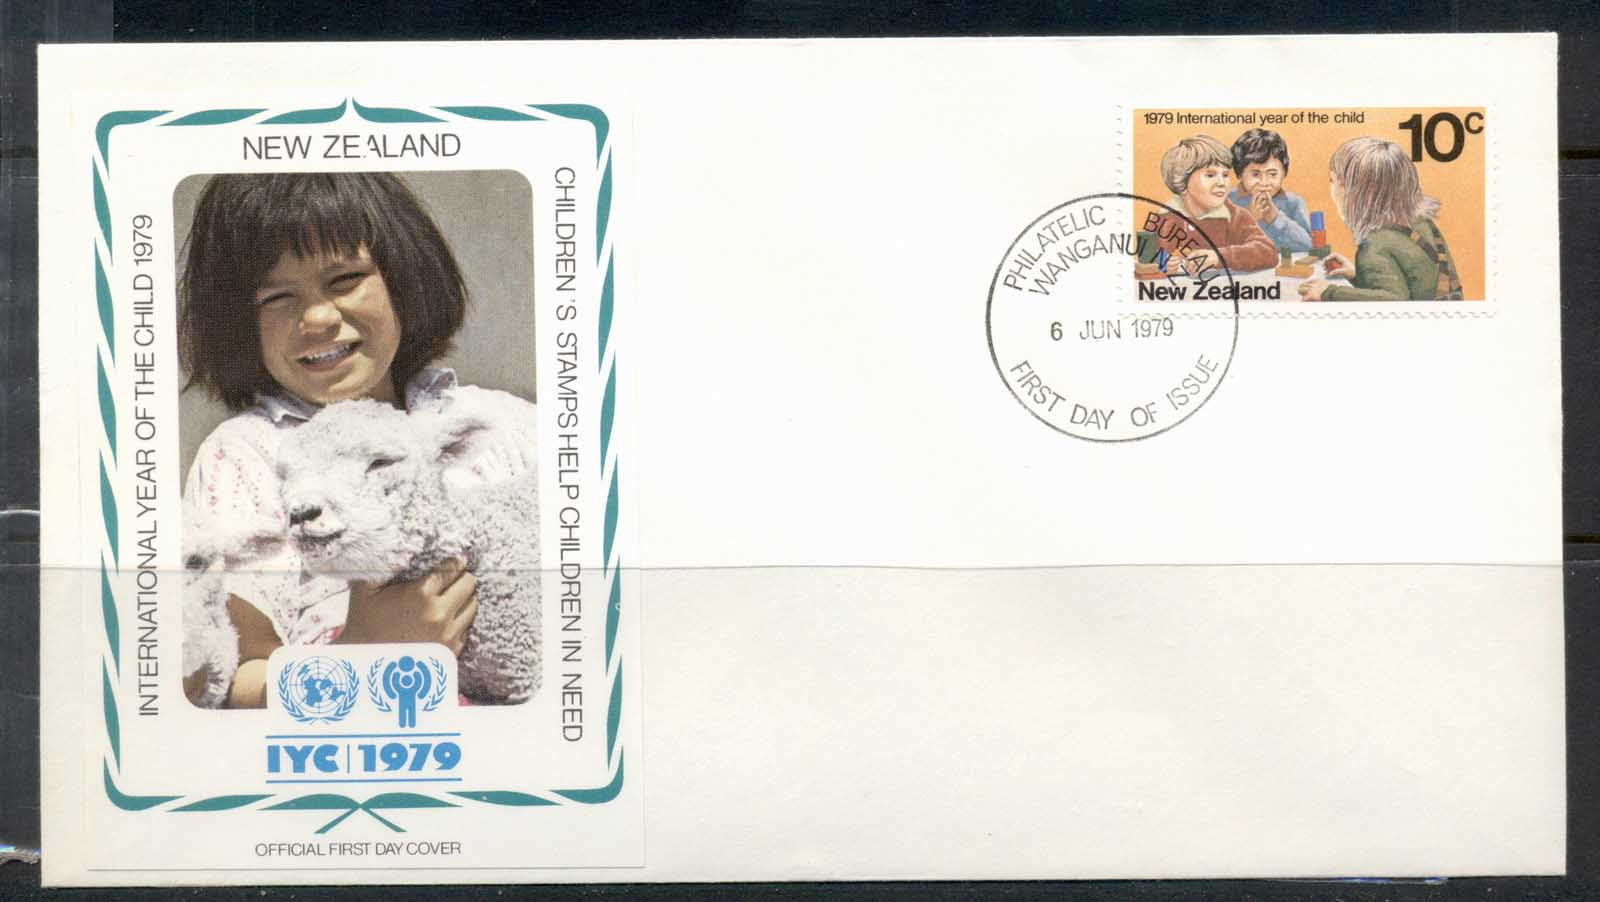 New Zealand 1979 IYC International year of the Child FDC